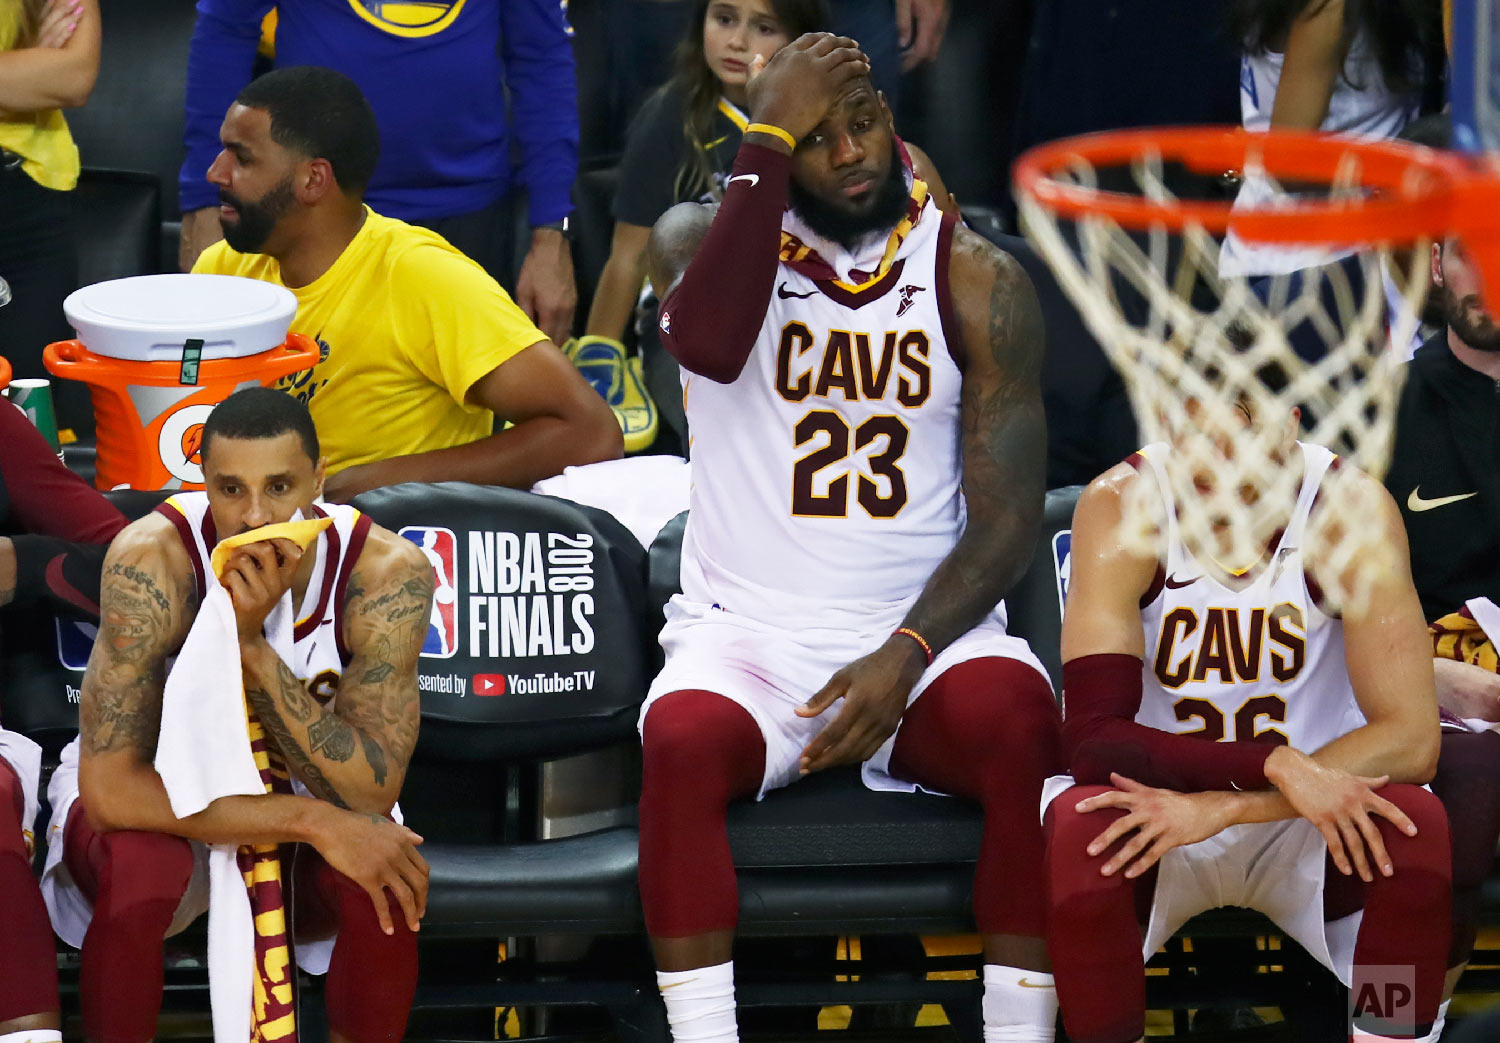 Cleveland Cavaliers forward LeBron James (23) sits on the bench between guards George Hill, left, and Kyle Korver during the second half of Game 2 of basketball's NBA Finals against the Golden State Warriors in Oakland, Calif., on June 3, 2018. The Warriors won 122-103. (AP Photo/Ben Margot)